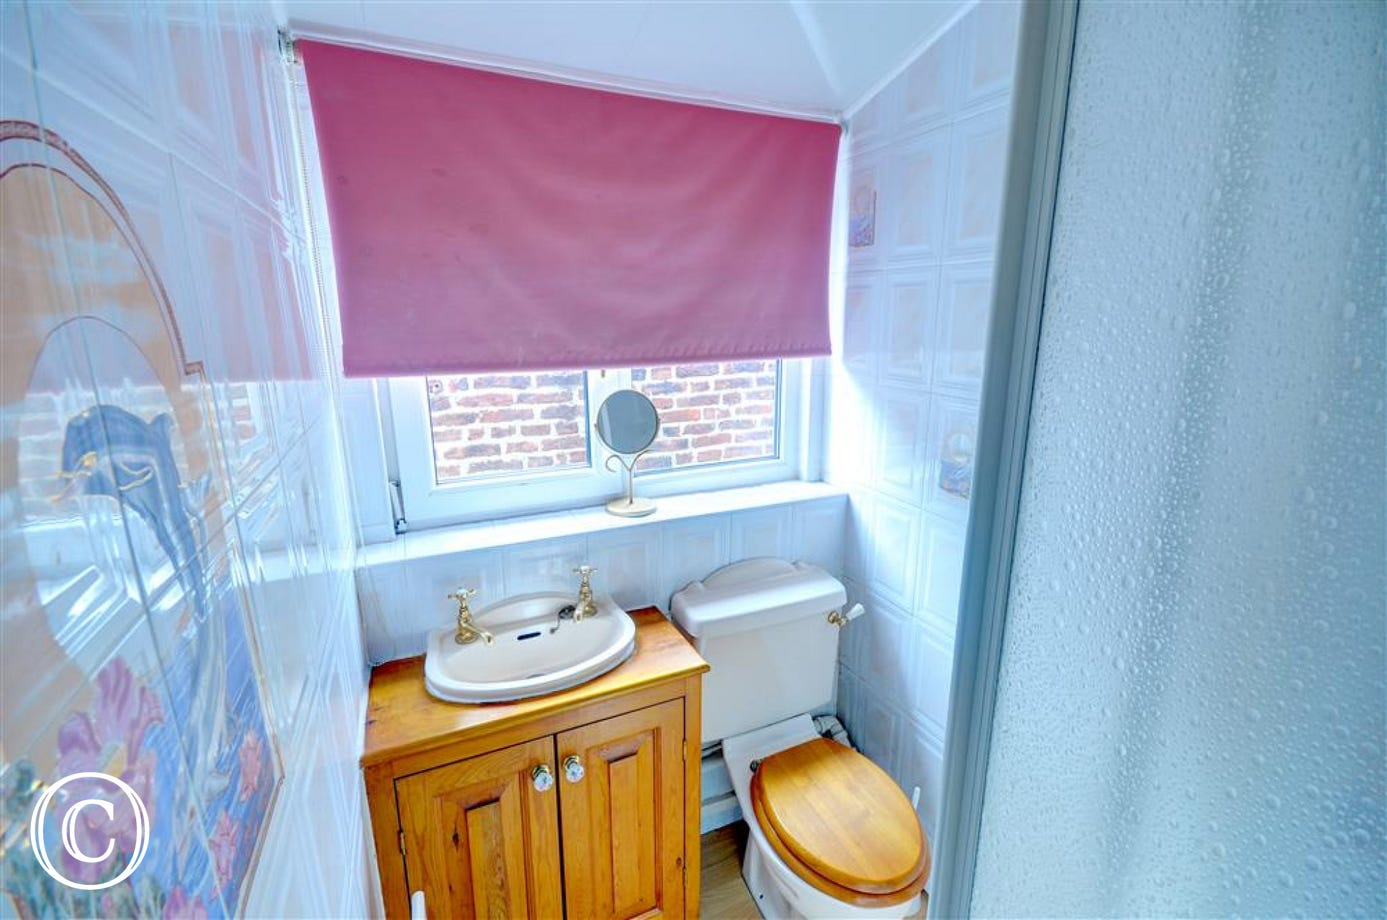 En-suite Shower Room which is accessed from the Bedroom on the second floor.